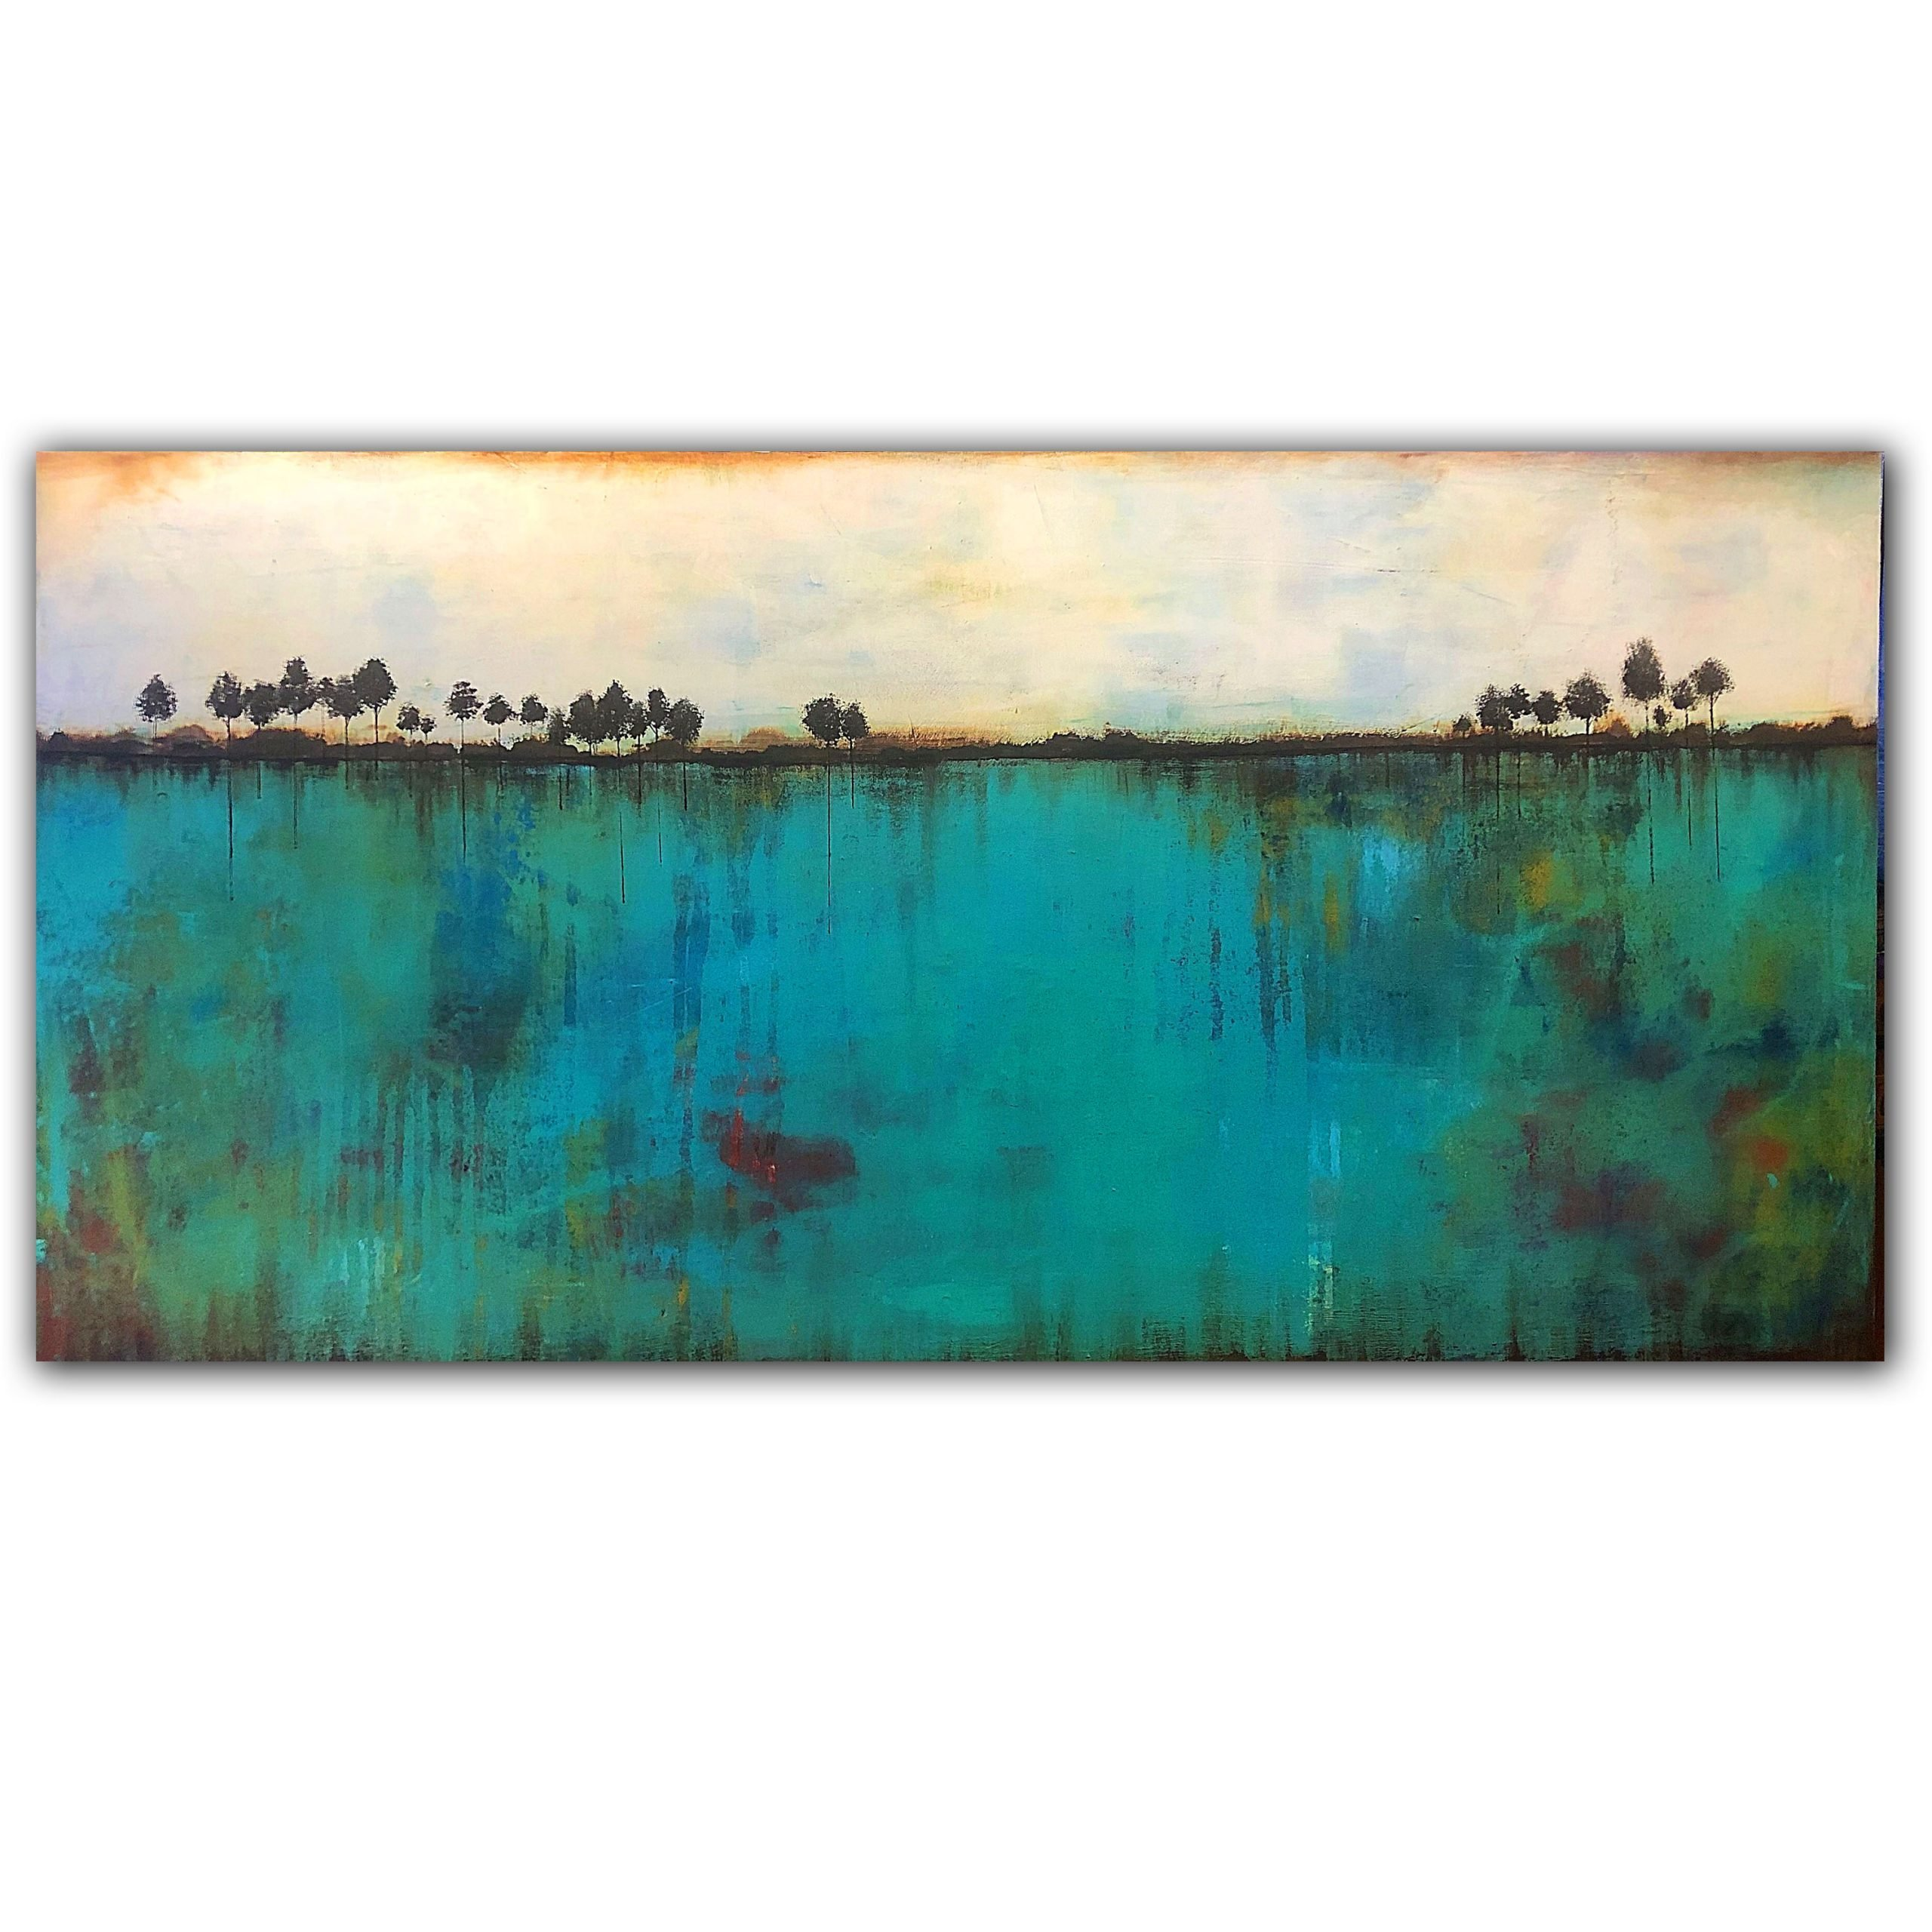 Turquoise and green multi layered abstract landscape oil painting